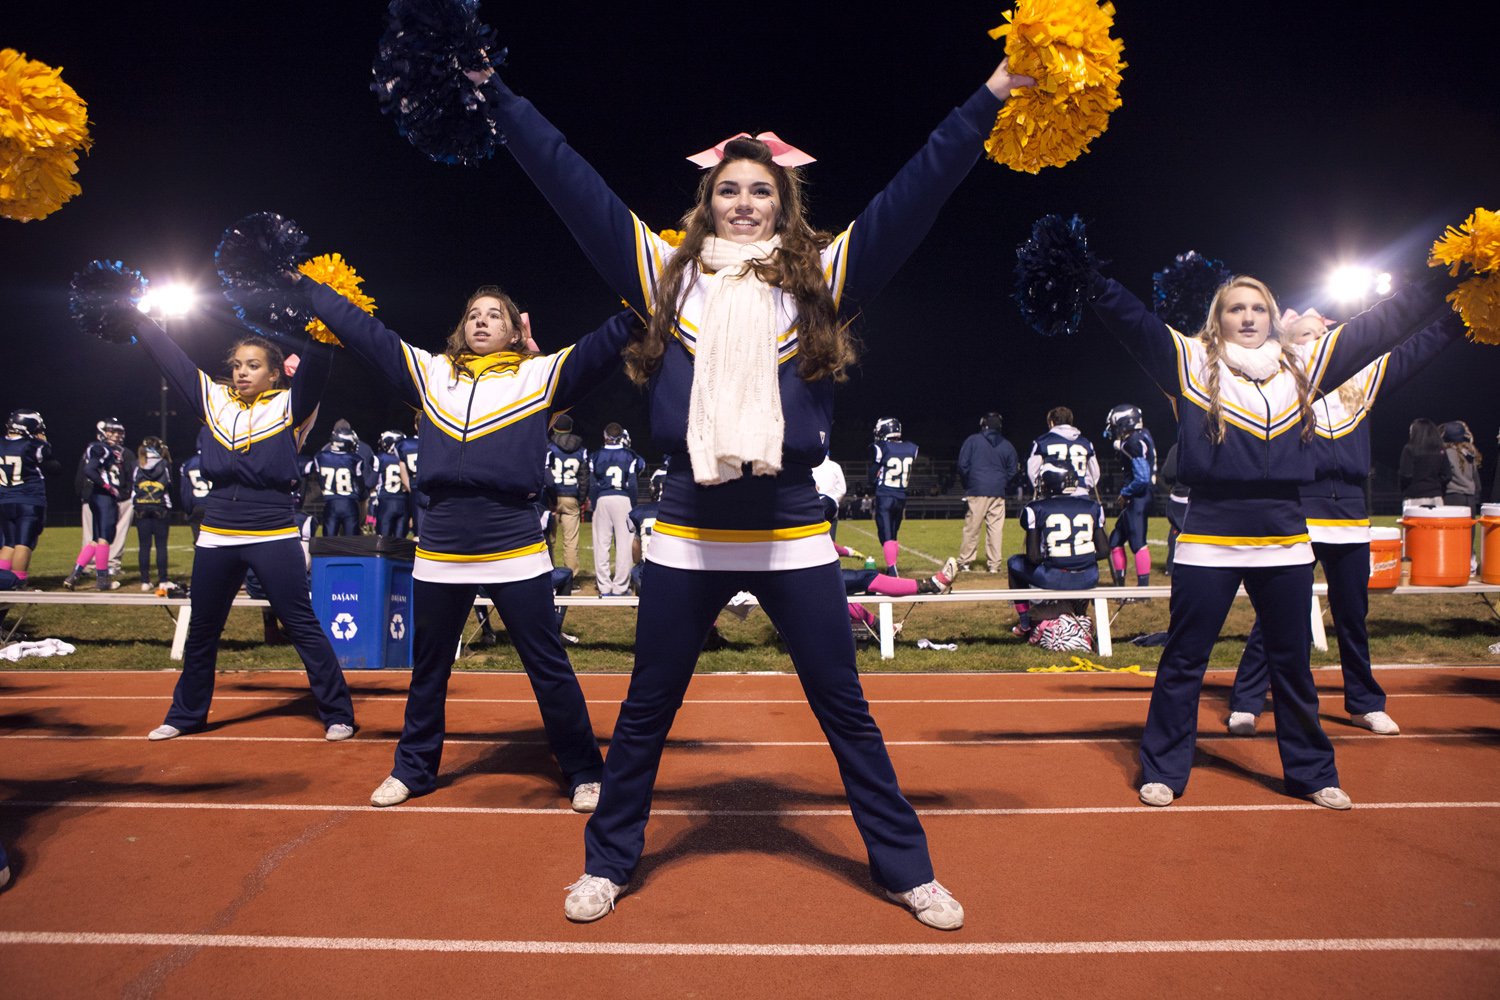 20131025_PA_Homecoming-3397web.jpg